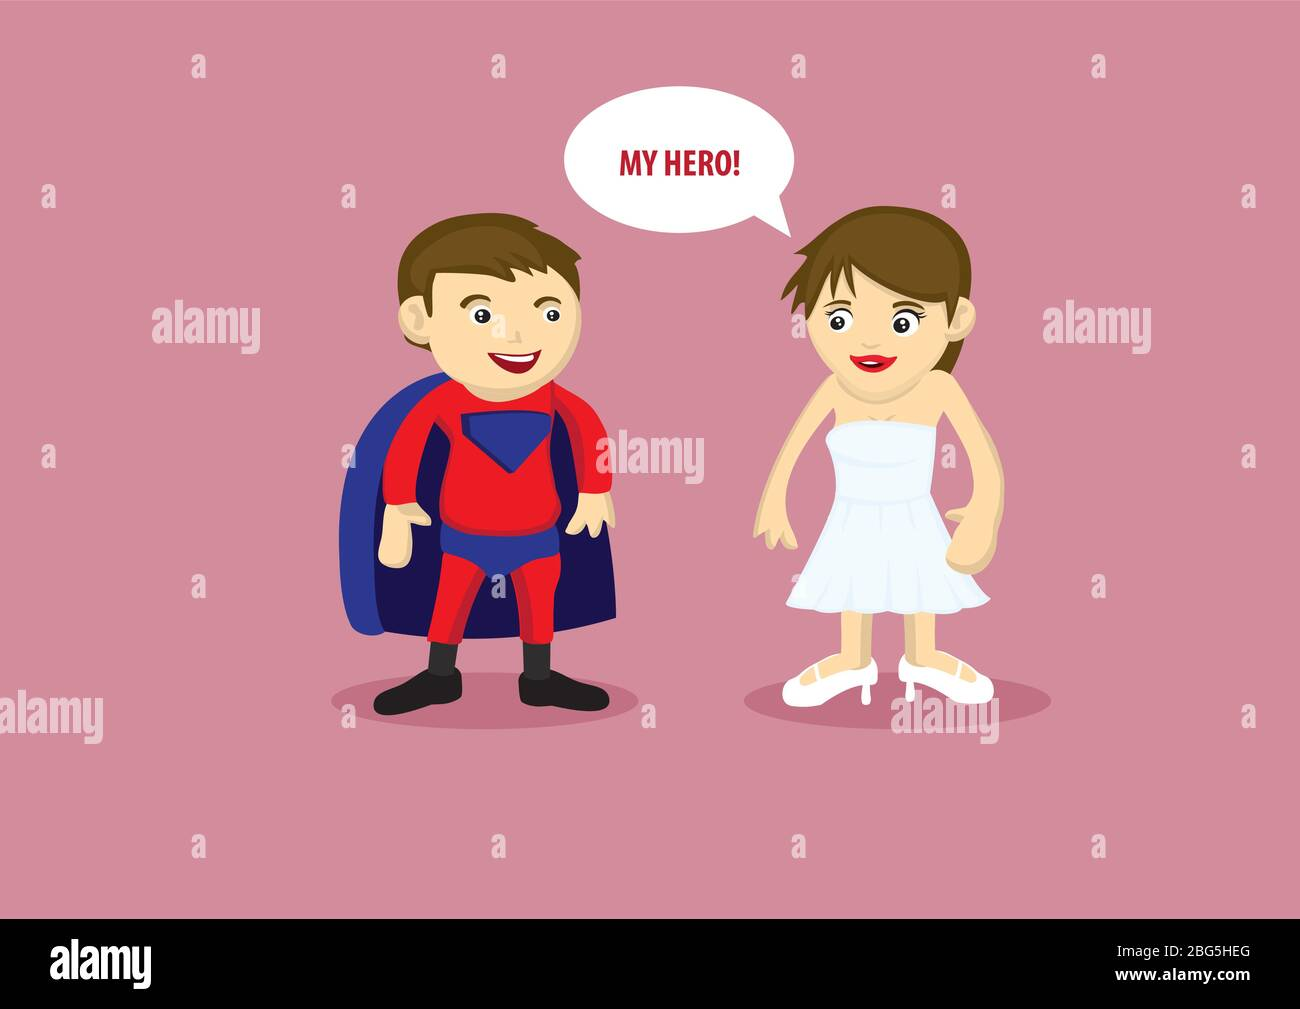 Vector illustration of a man in super hero costume with cape and a lady in white strapless dress and heels saying My Hero. Stock Vector